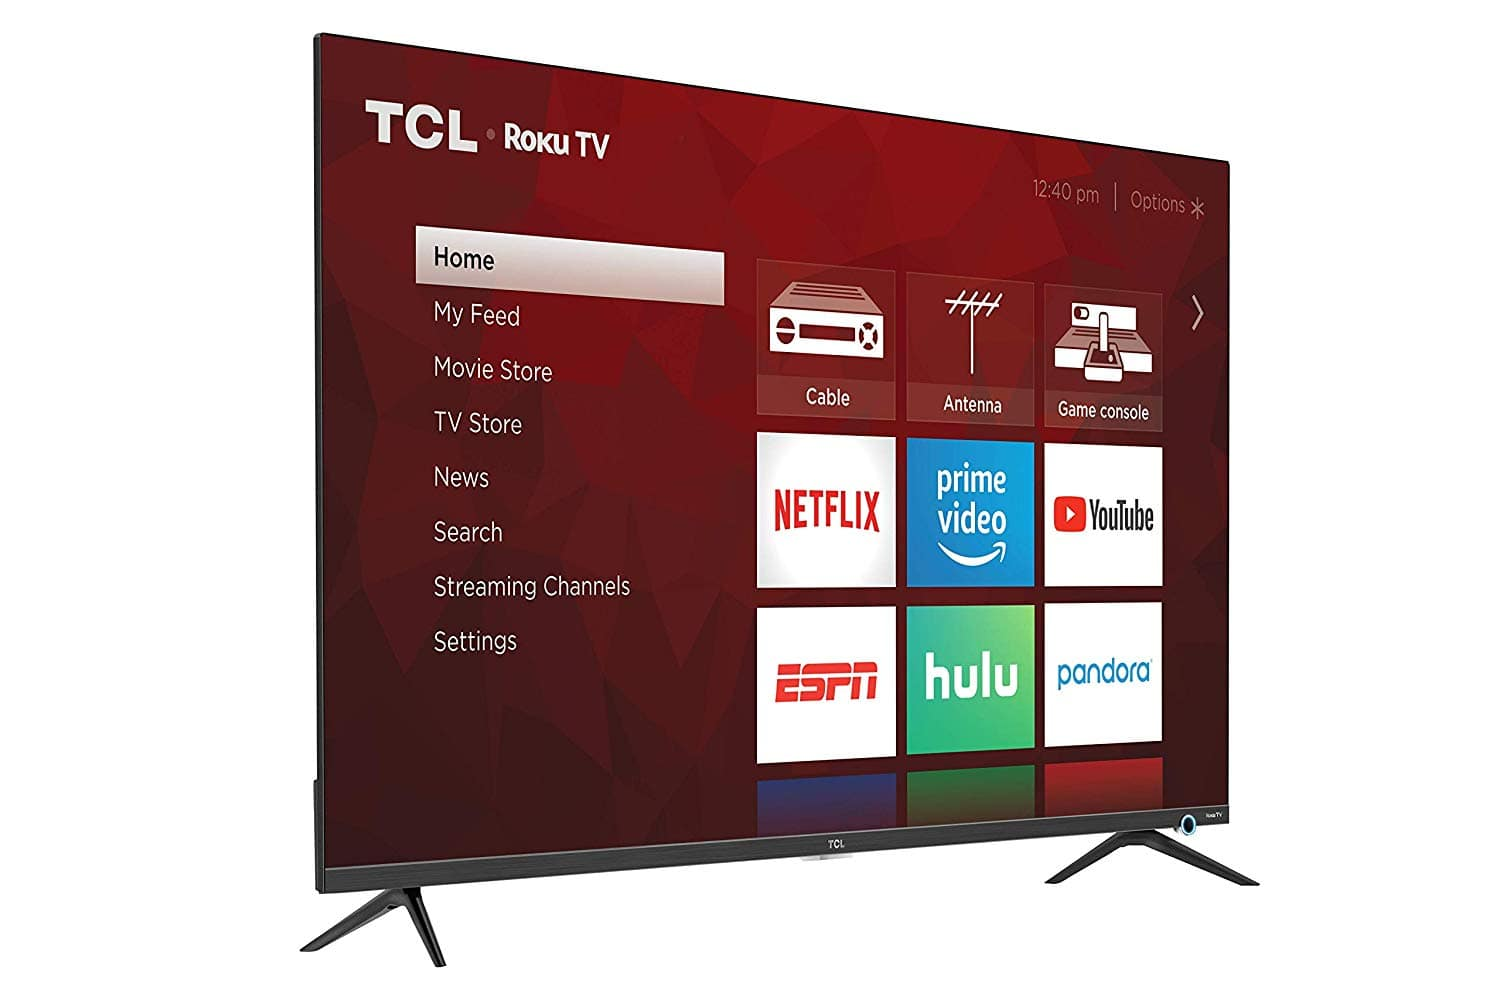 "TCL 50"" Class 5-Series 4K UHD Dolby Vision HDR Roku Smart TV - 50S525 [Tv Only] $299.99"